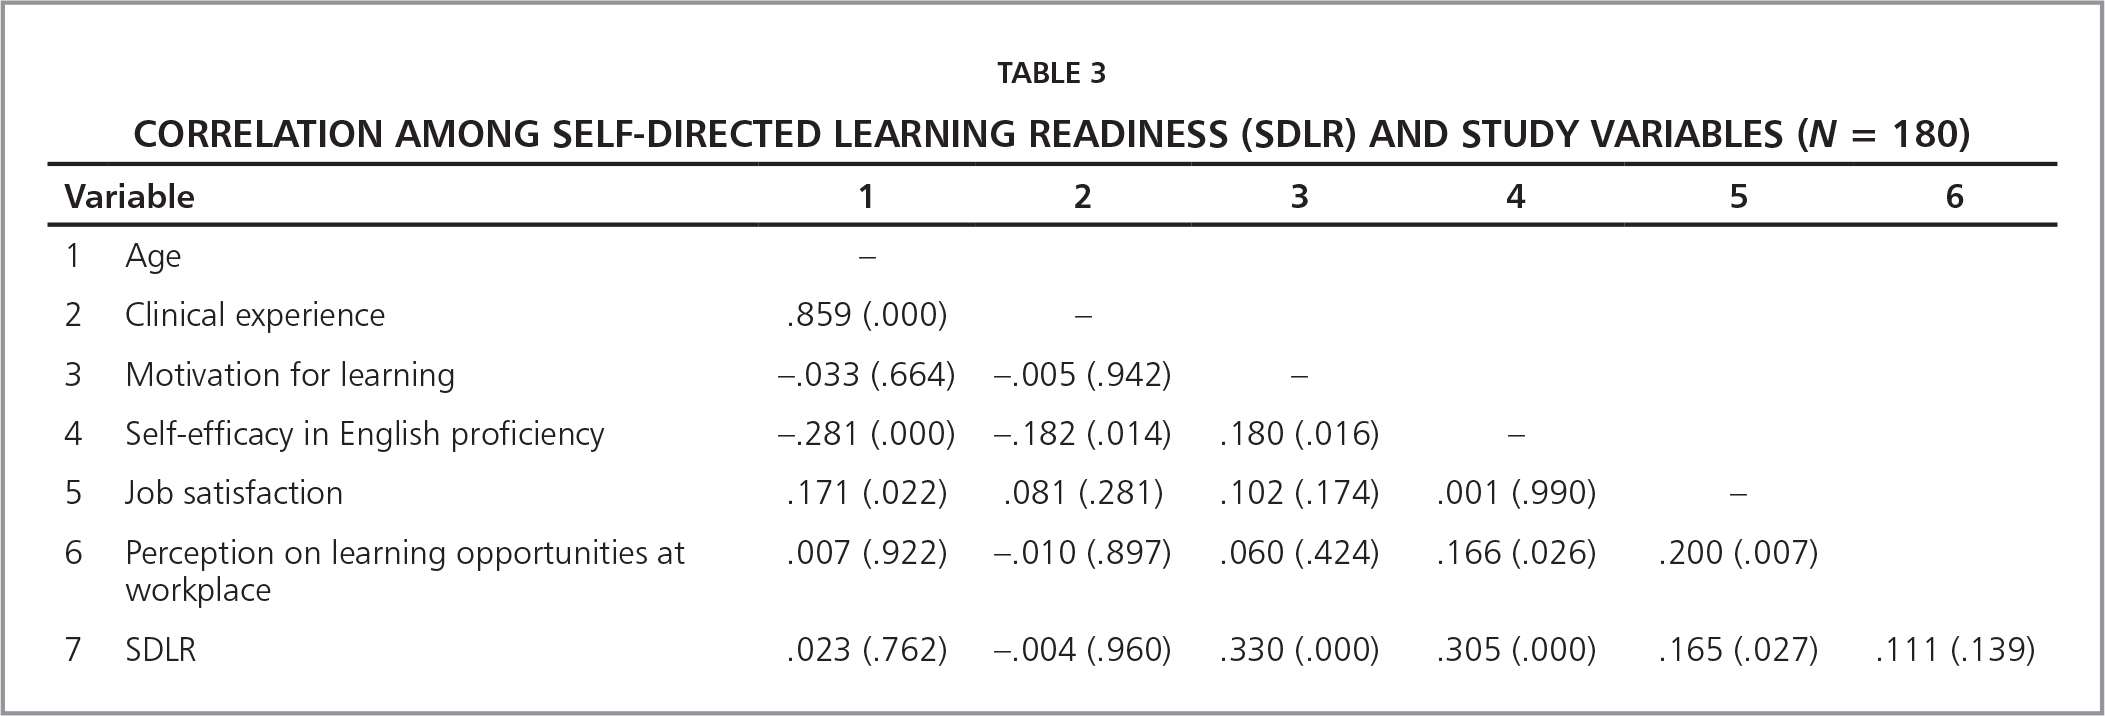 Correlation among Self-Directed Learning Readiness (SDLR) and Study Variables (N = 180)